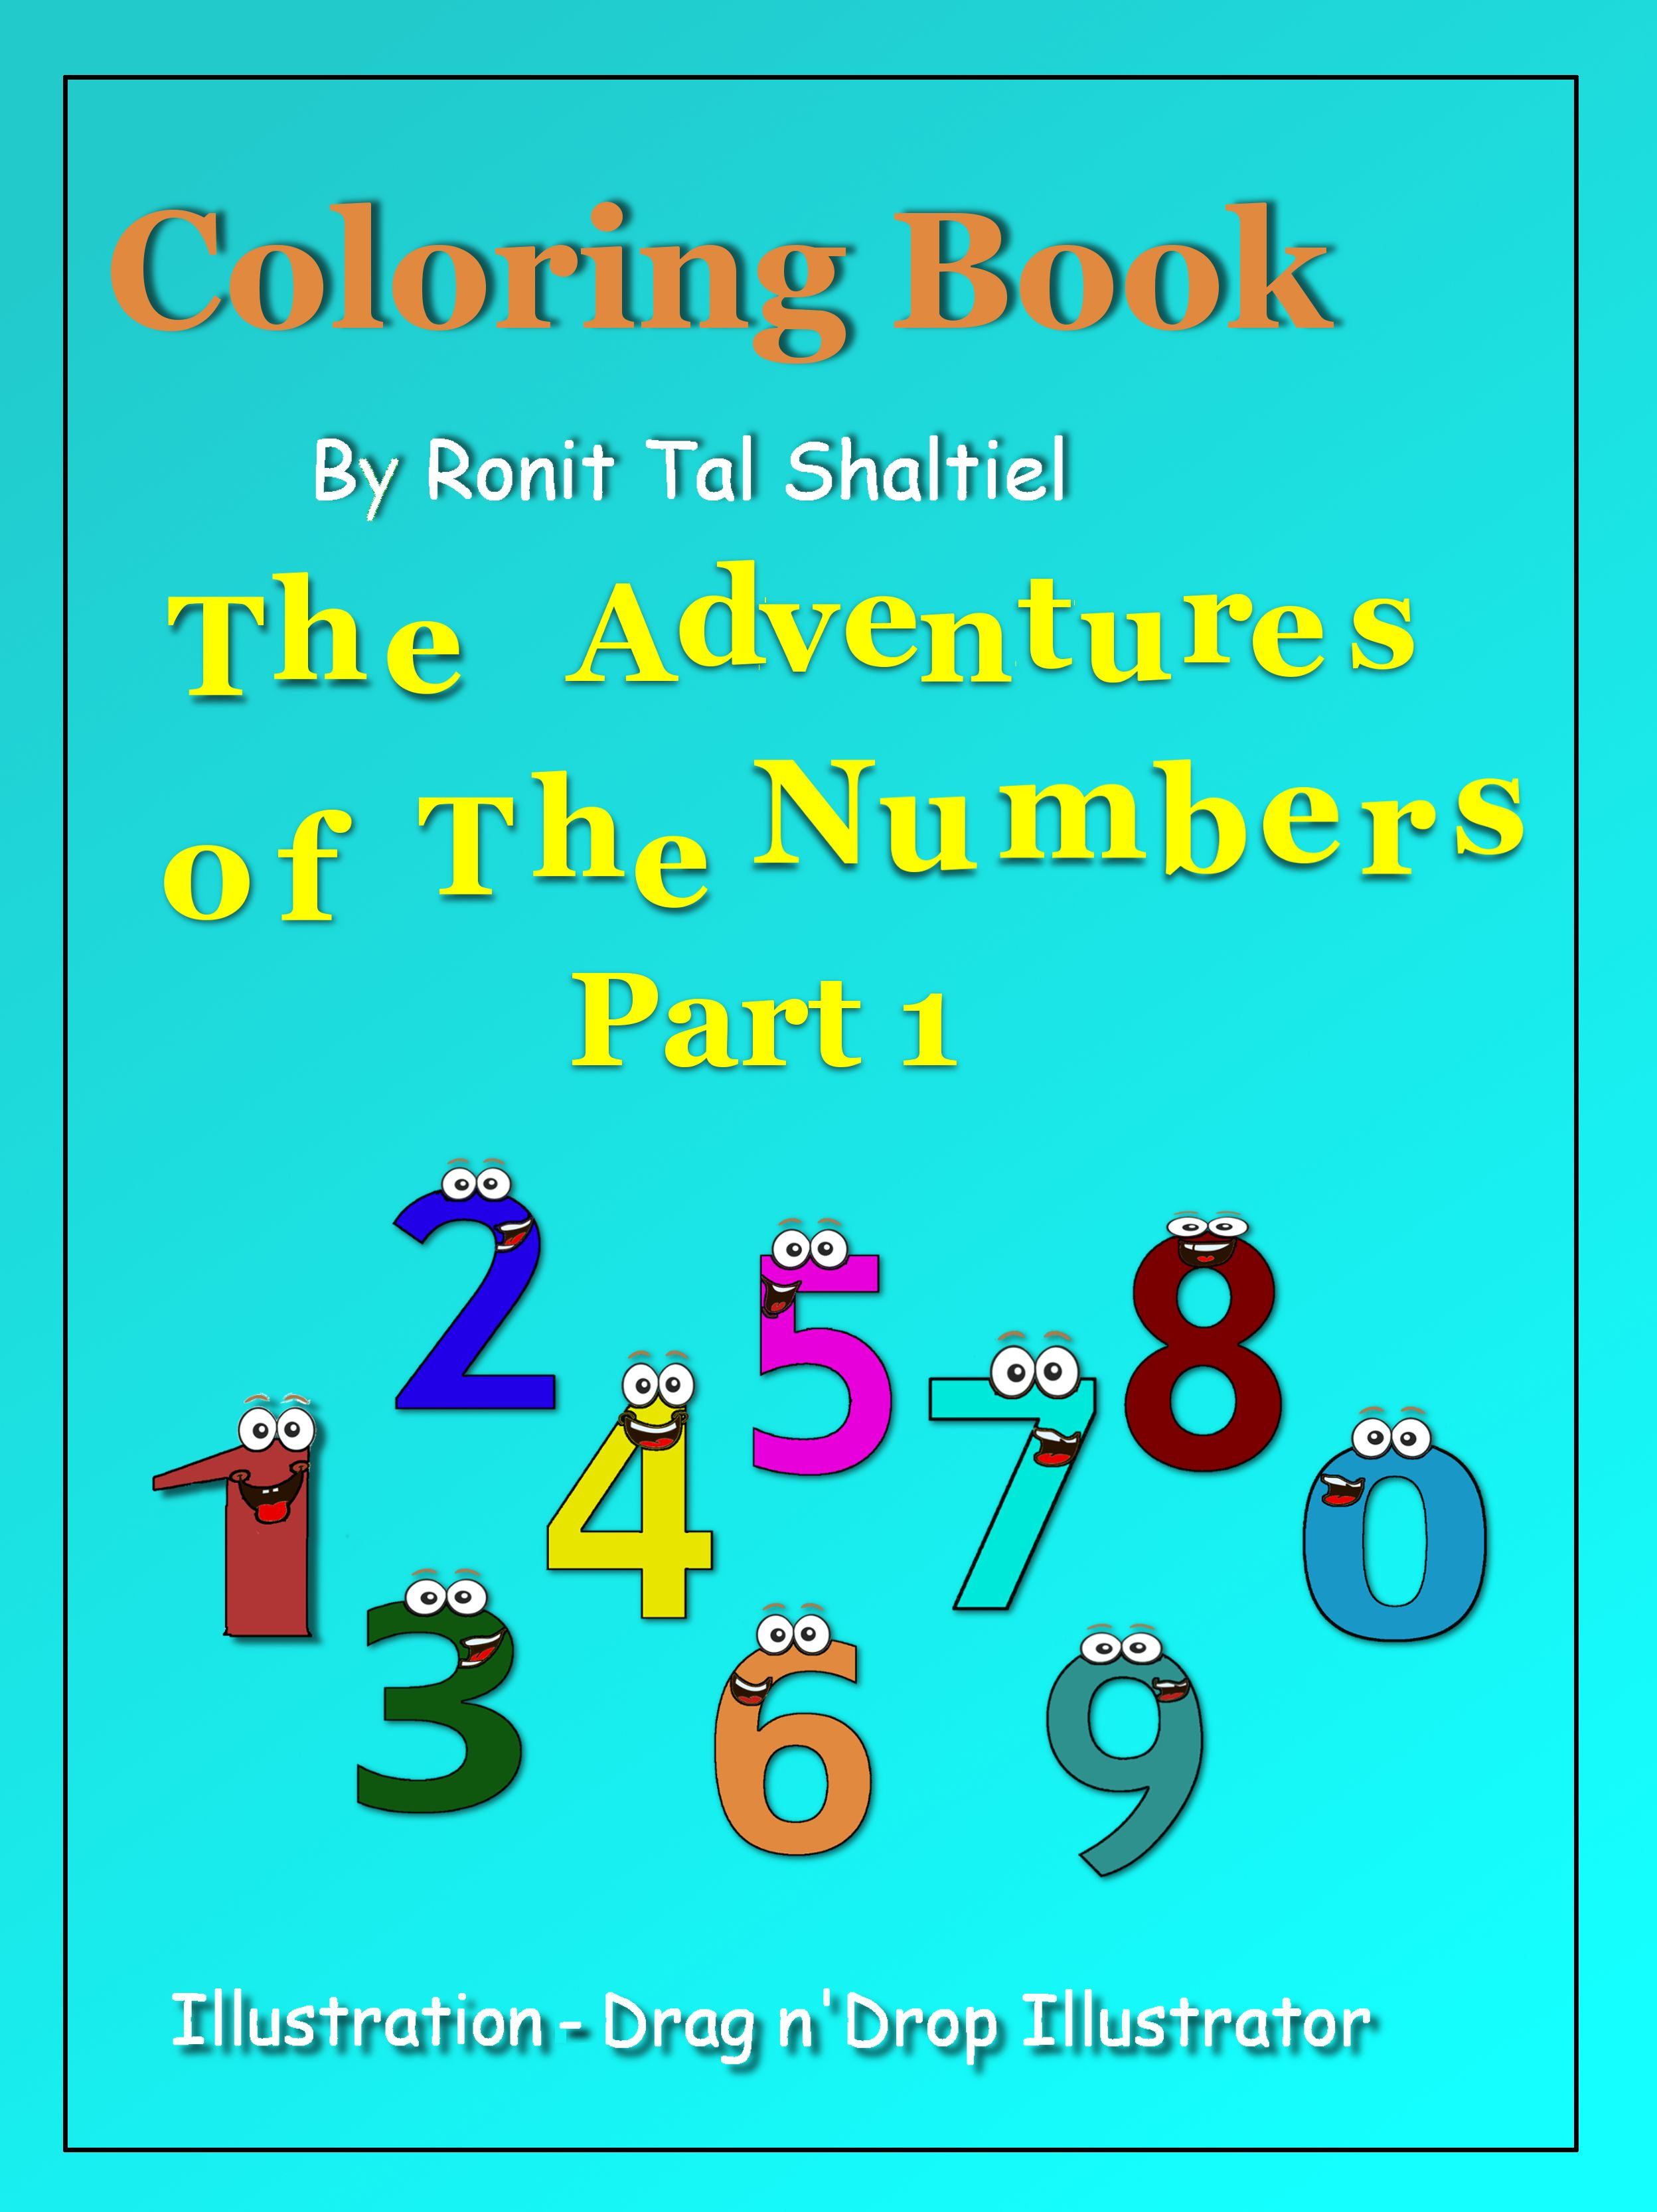 This coloring book is an adventure of the numbers one to twenty. In ...